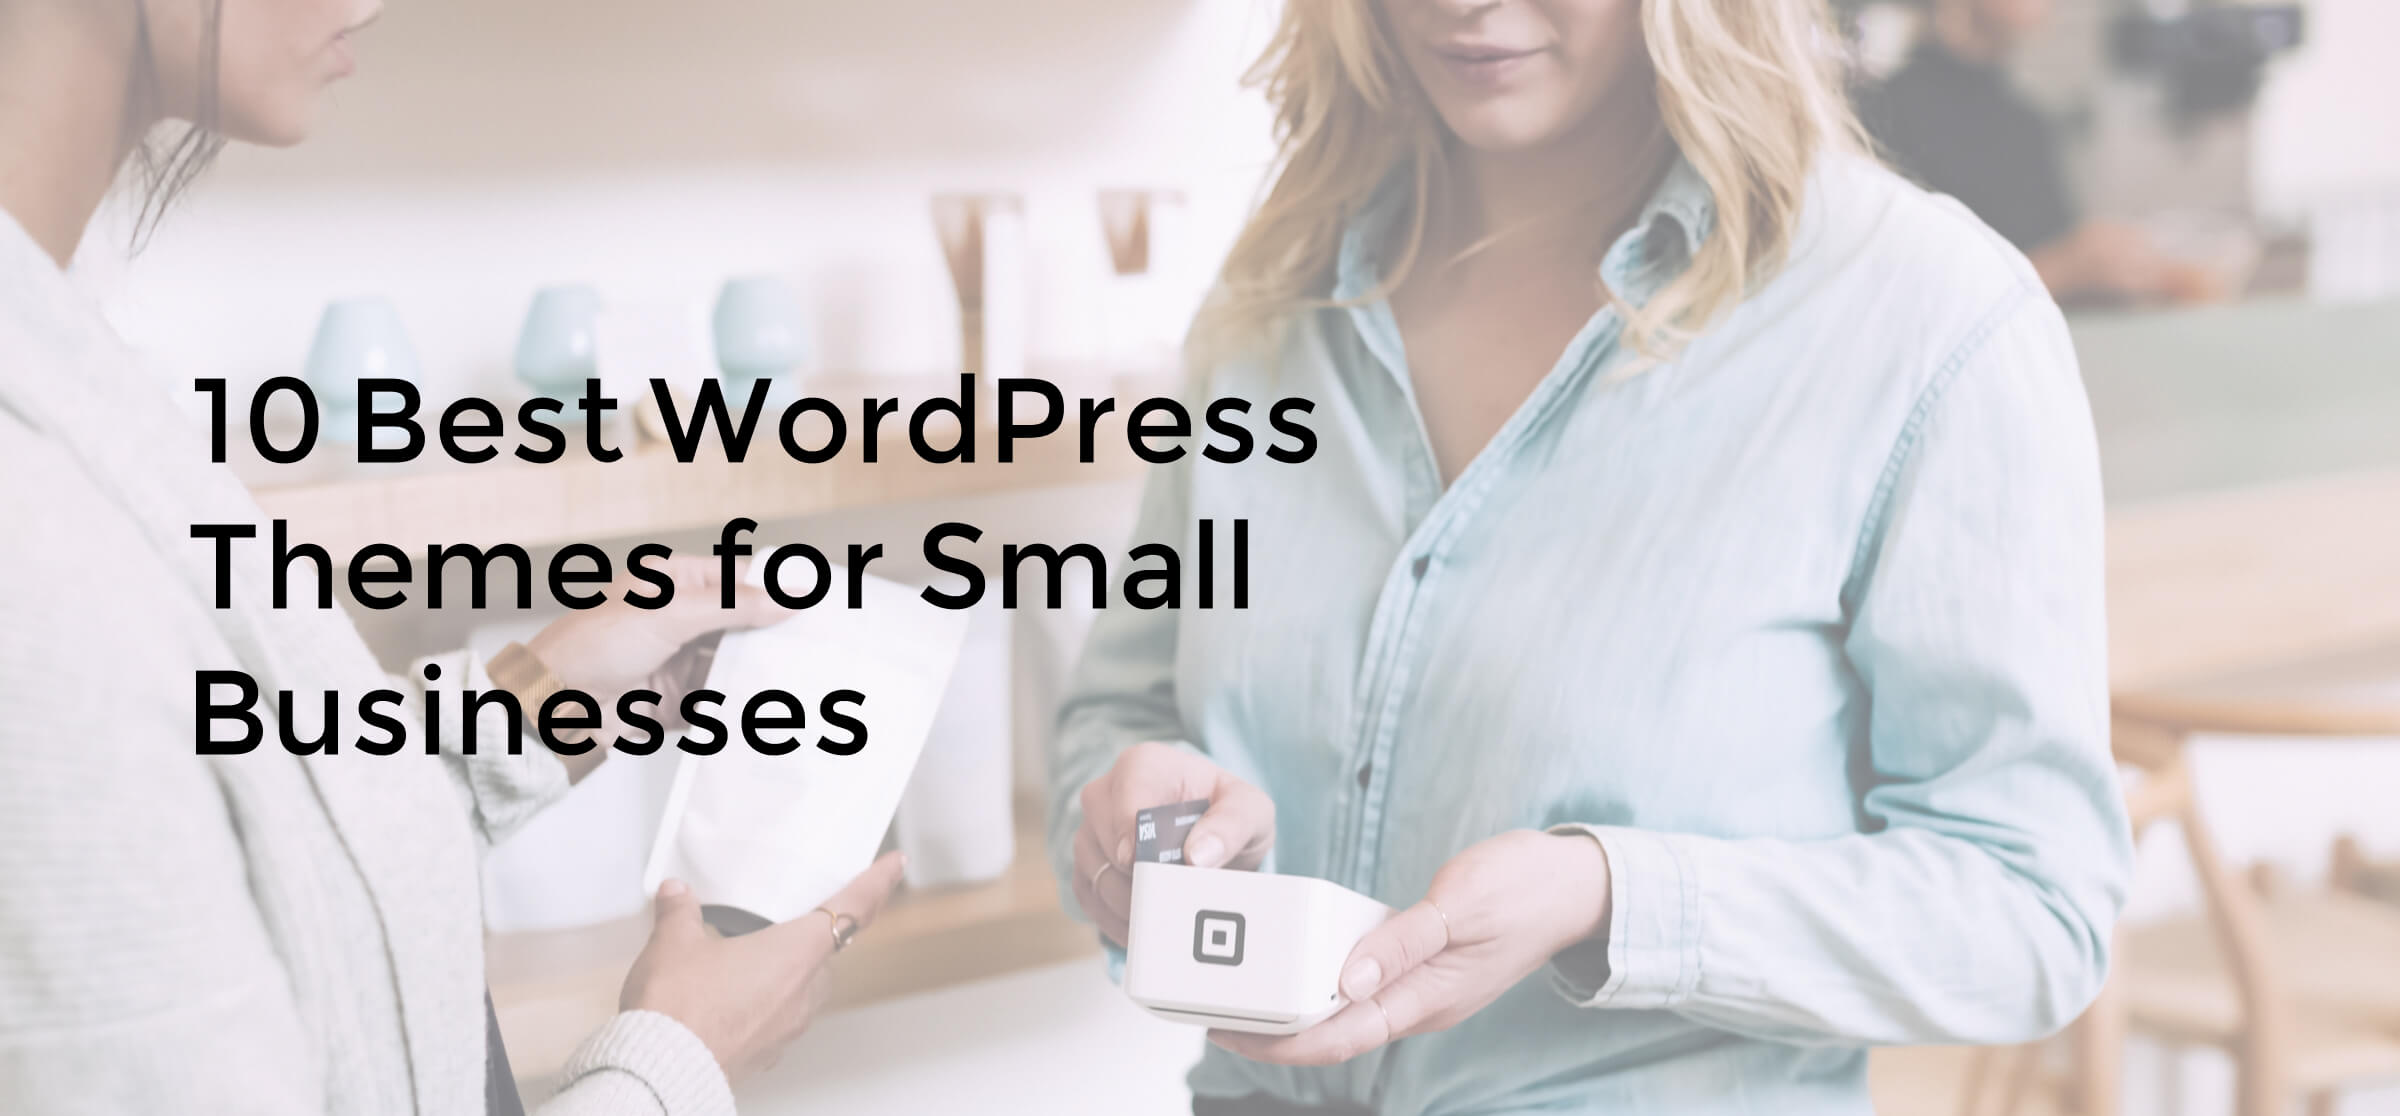 10 Best WordPress Themes for Small Businesses